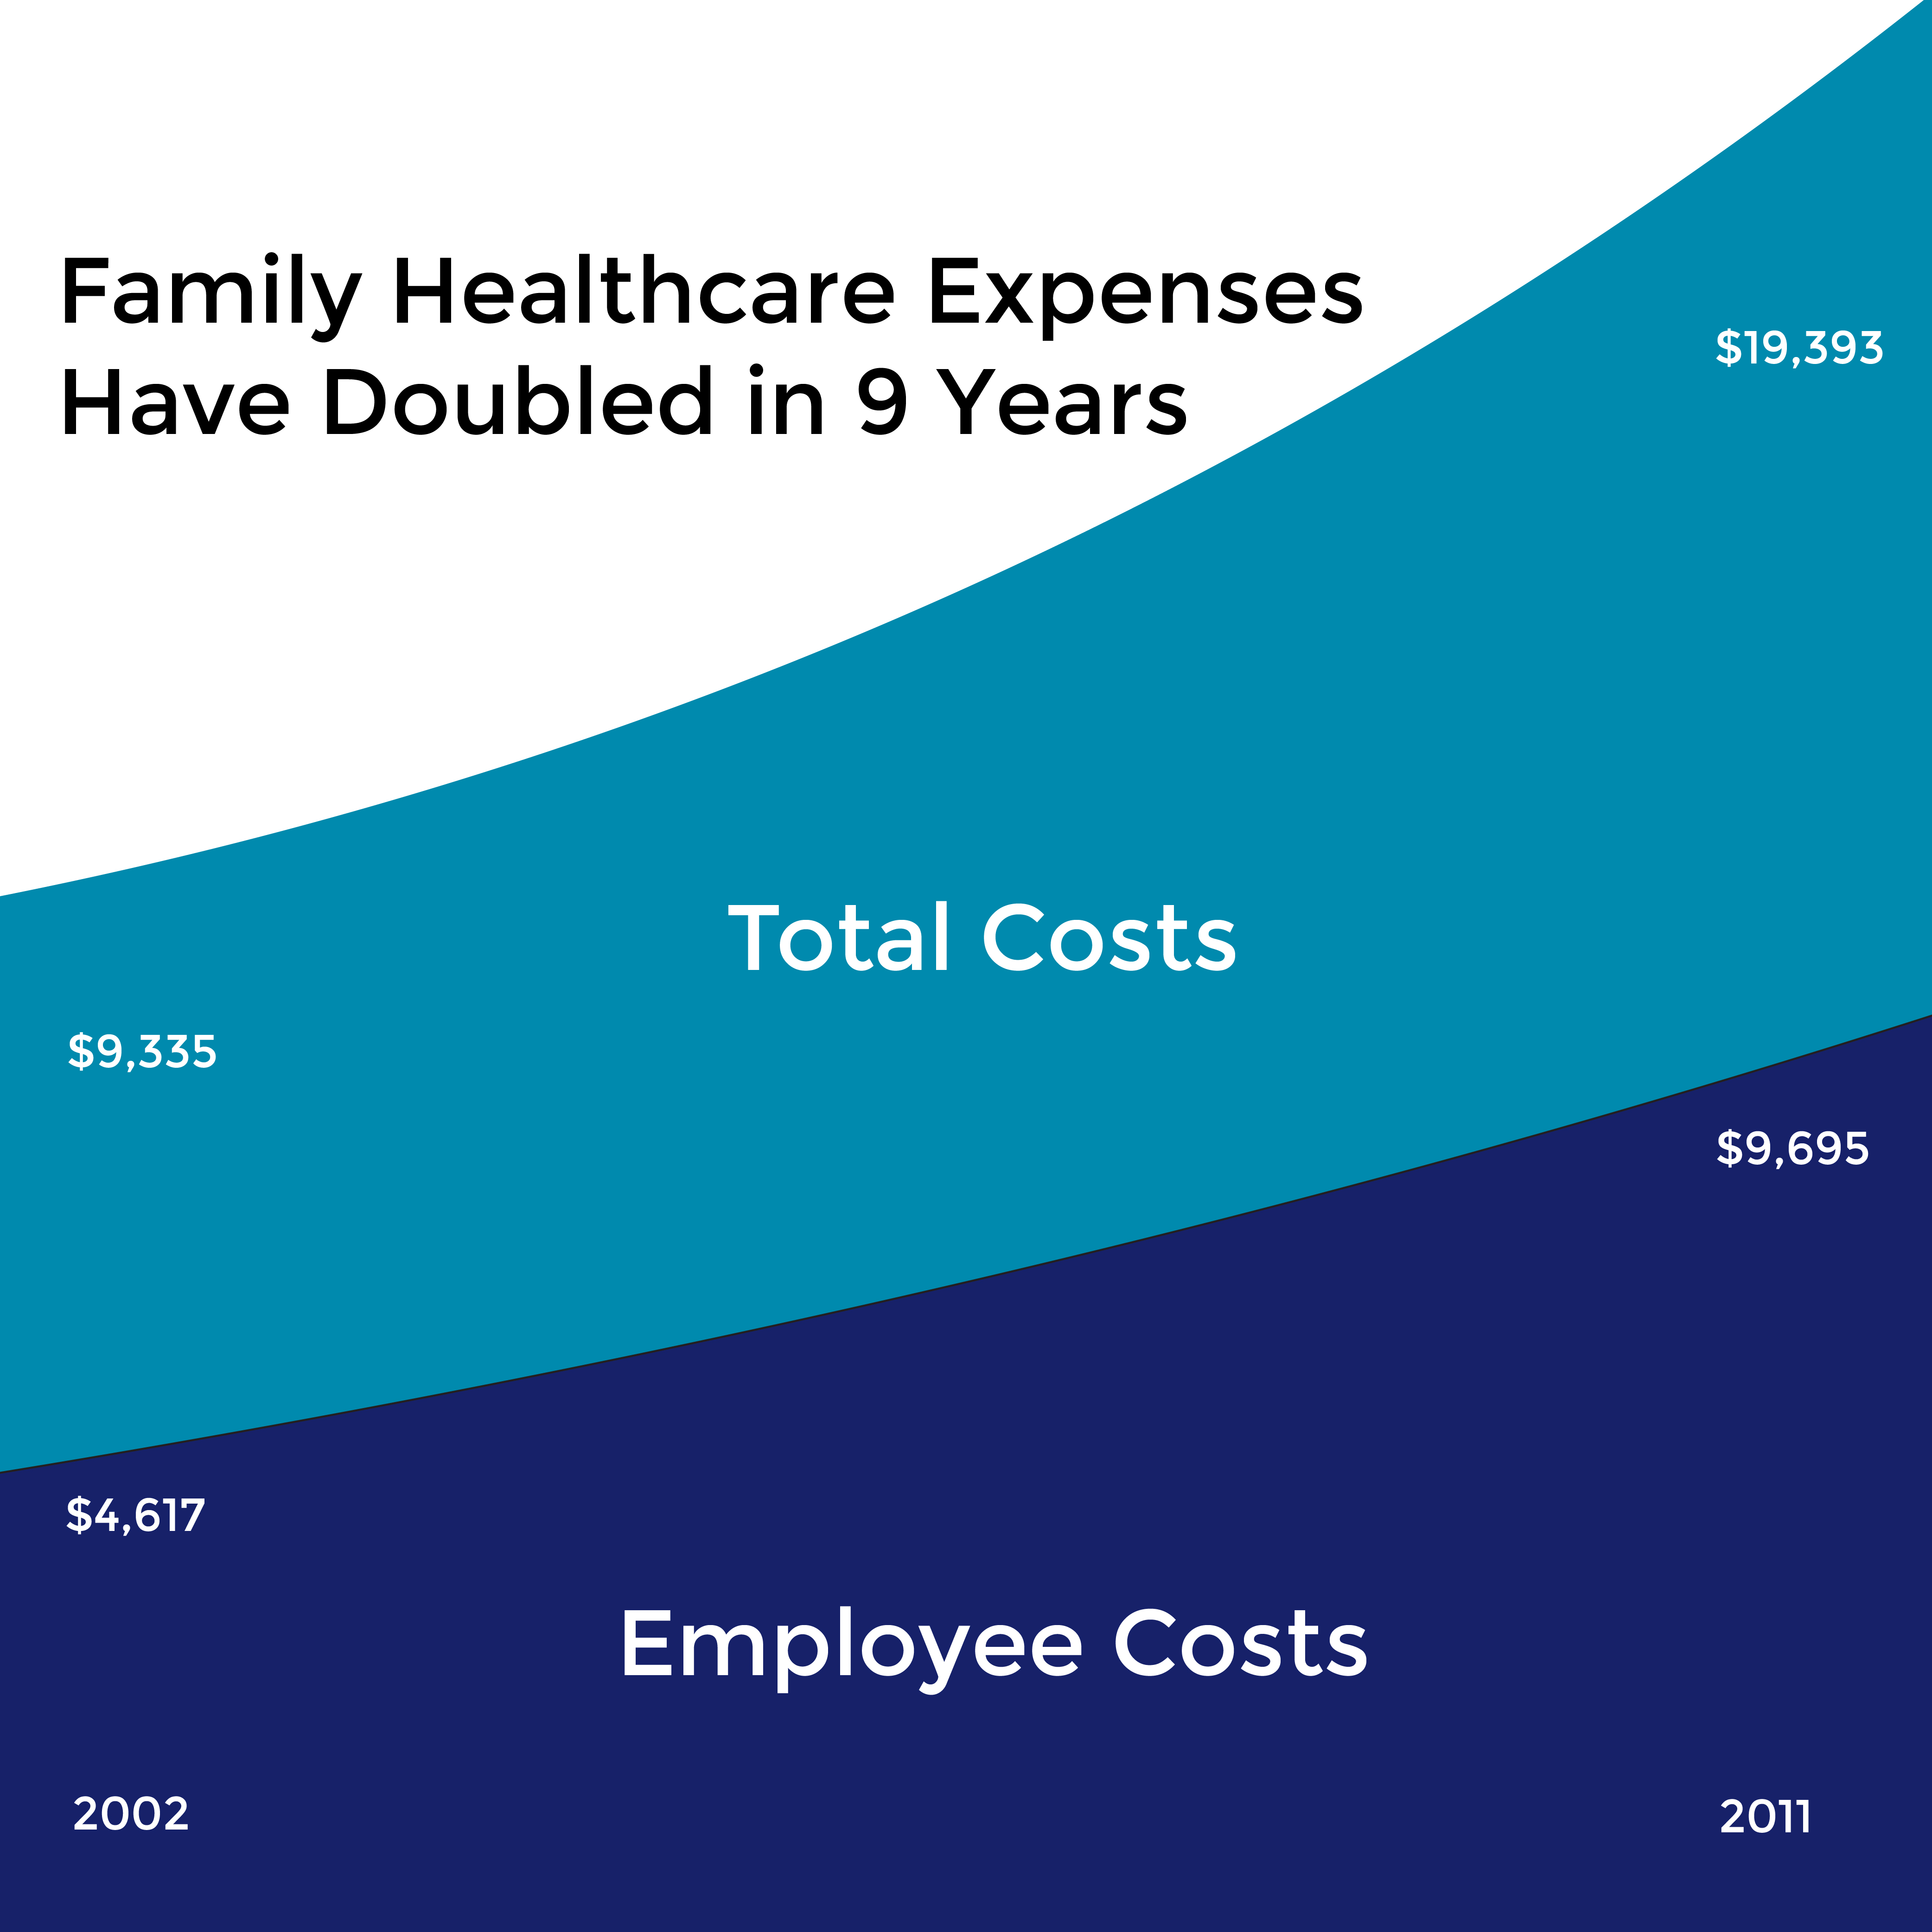 Family Healthcare Expenses